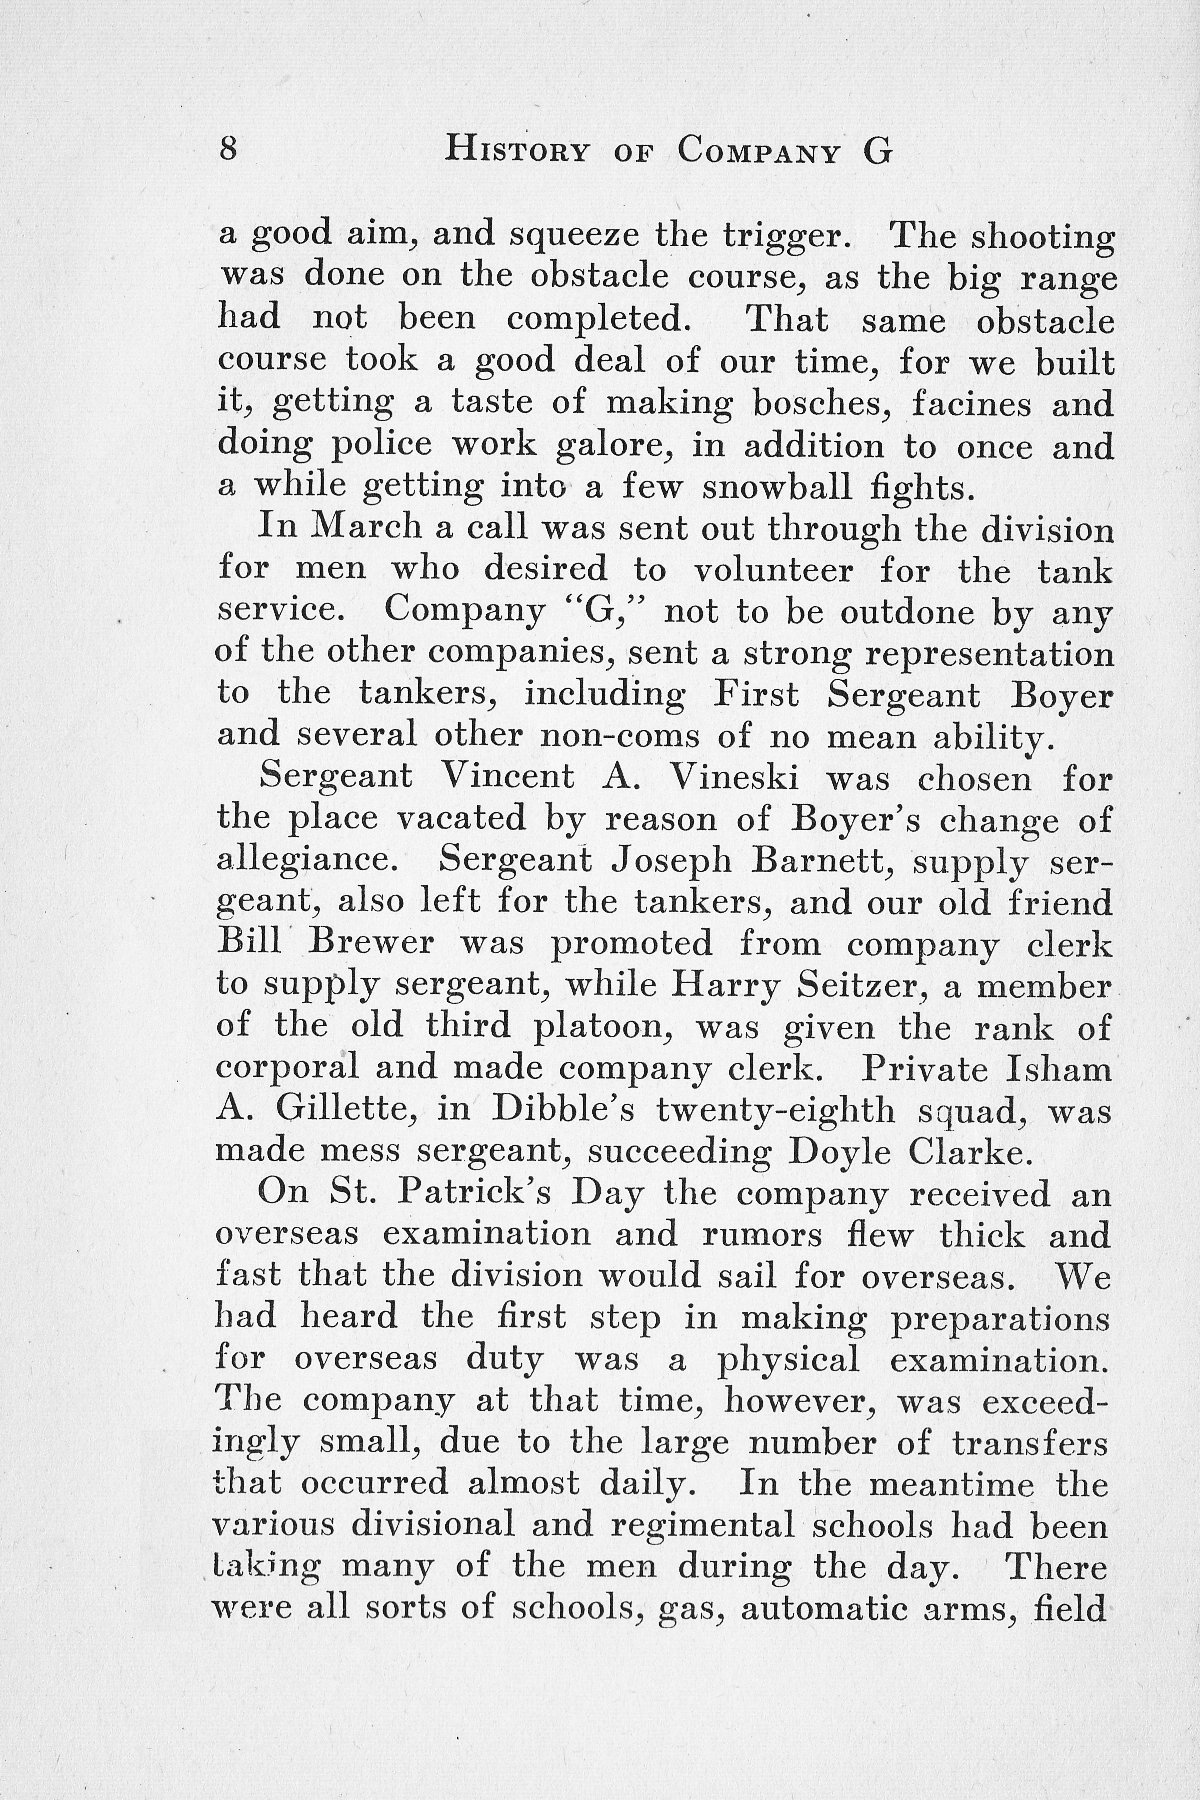 History of Company G 314th Infanty - Page 008